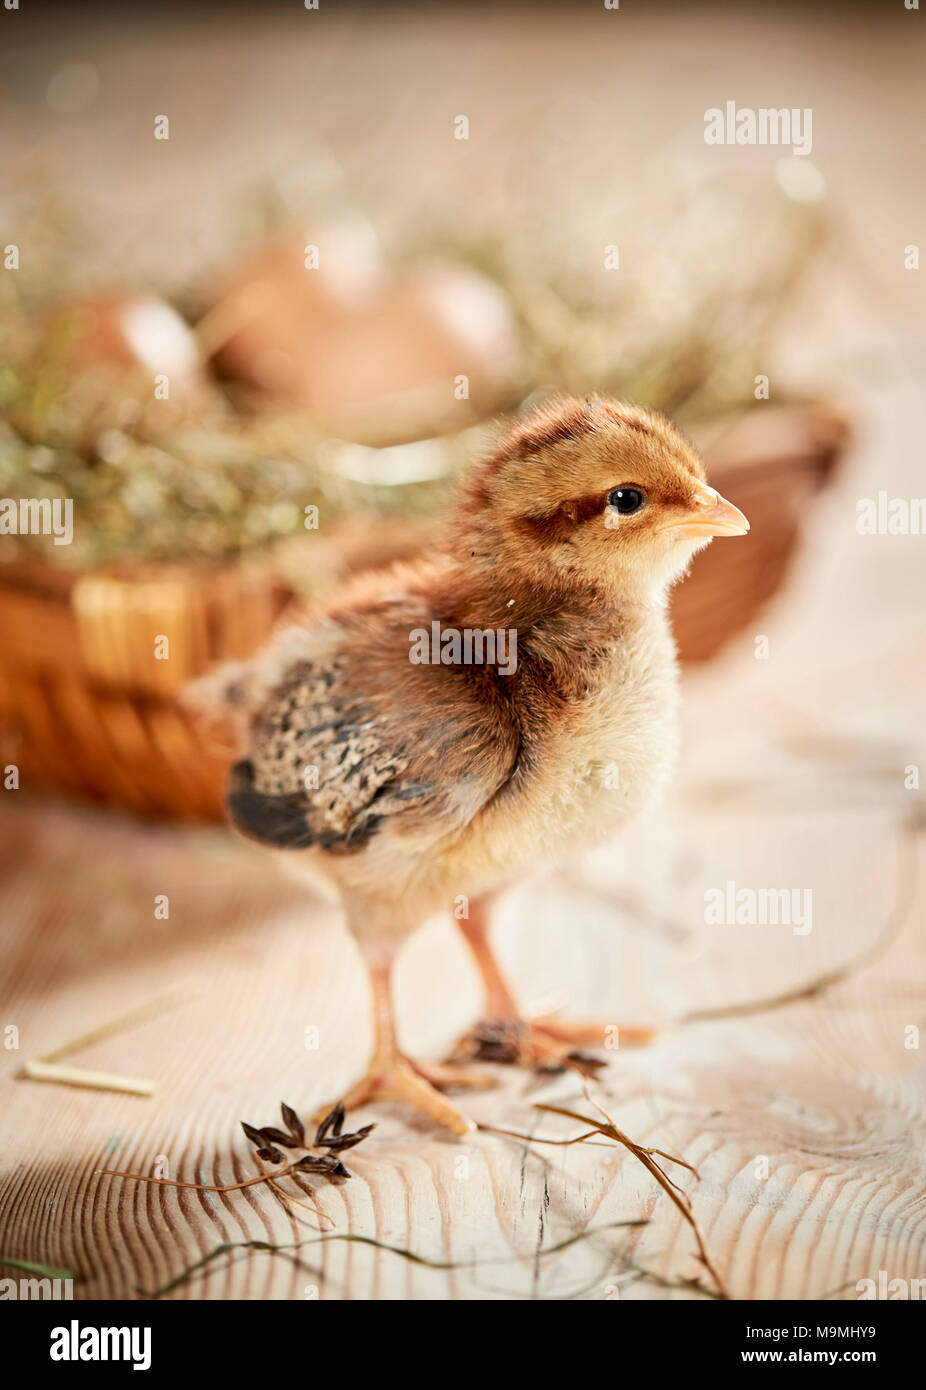 Welsummer Chicken. Chicken standing on wood, in front of nest with eggs. Germany - Stock Image